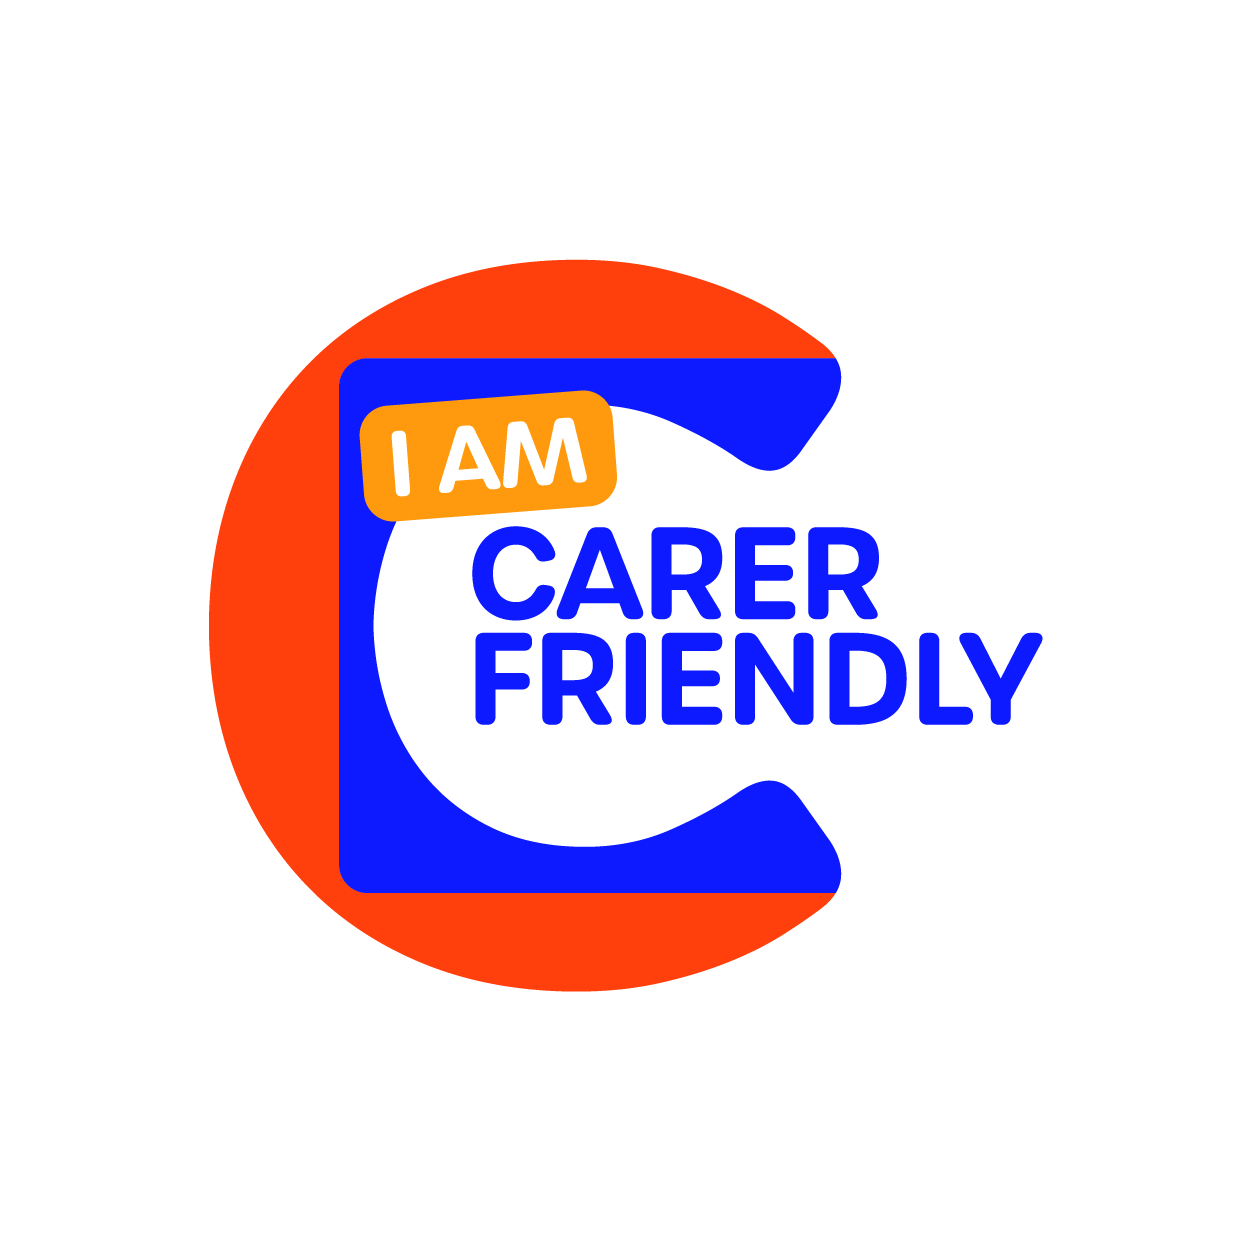 Carer Friendly